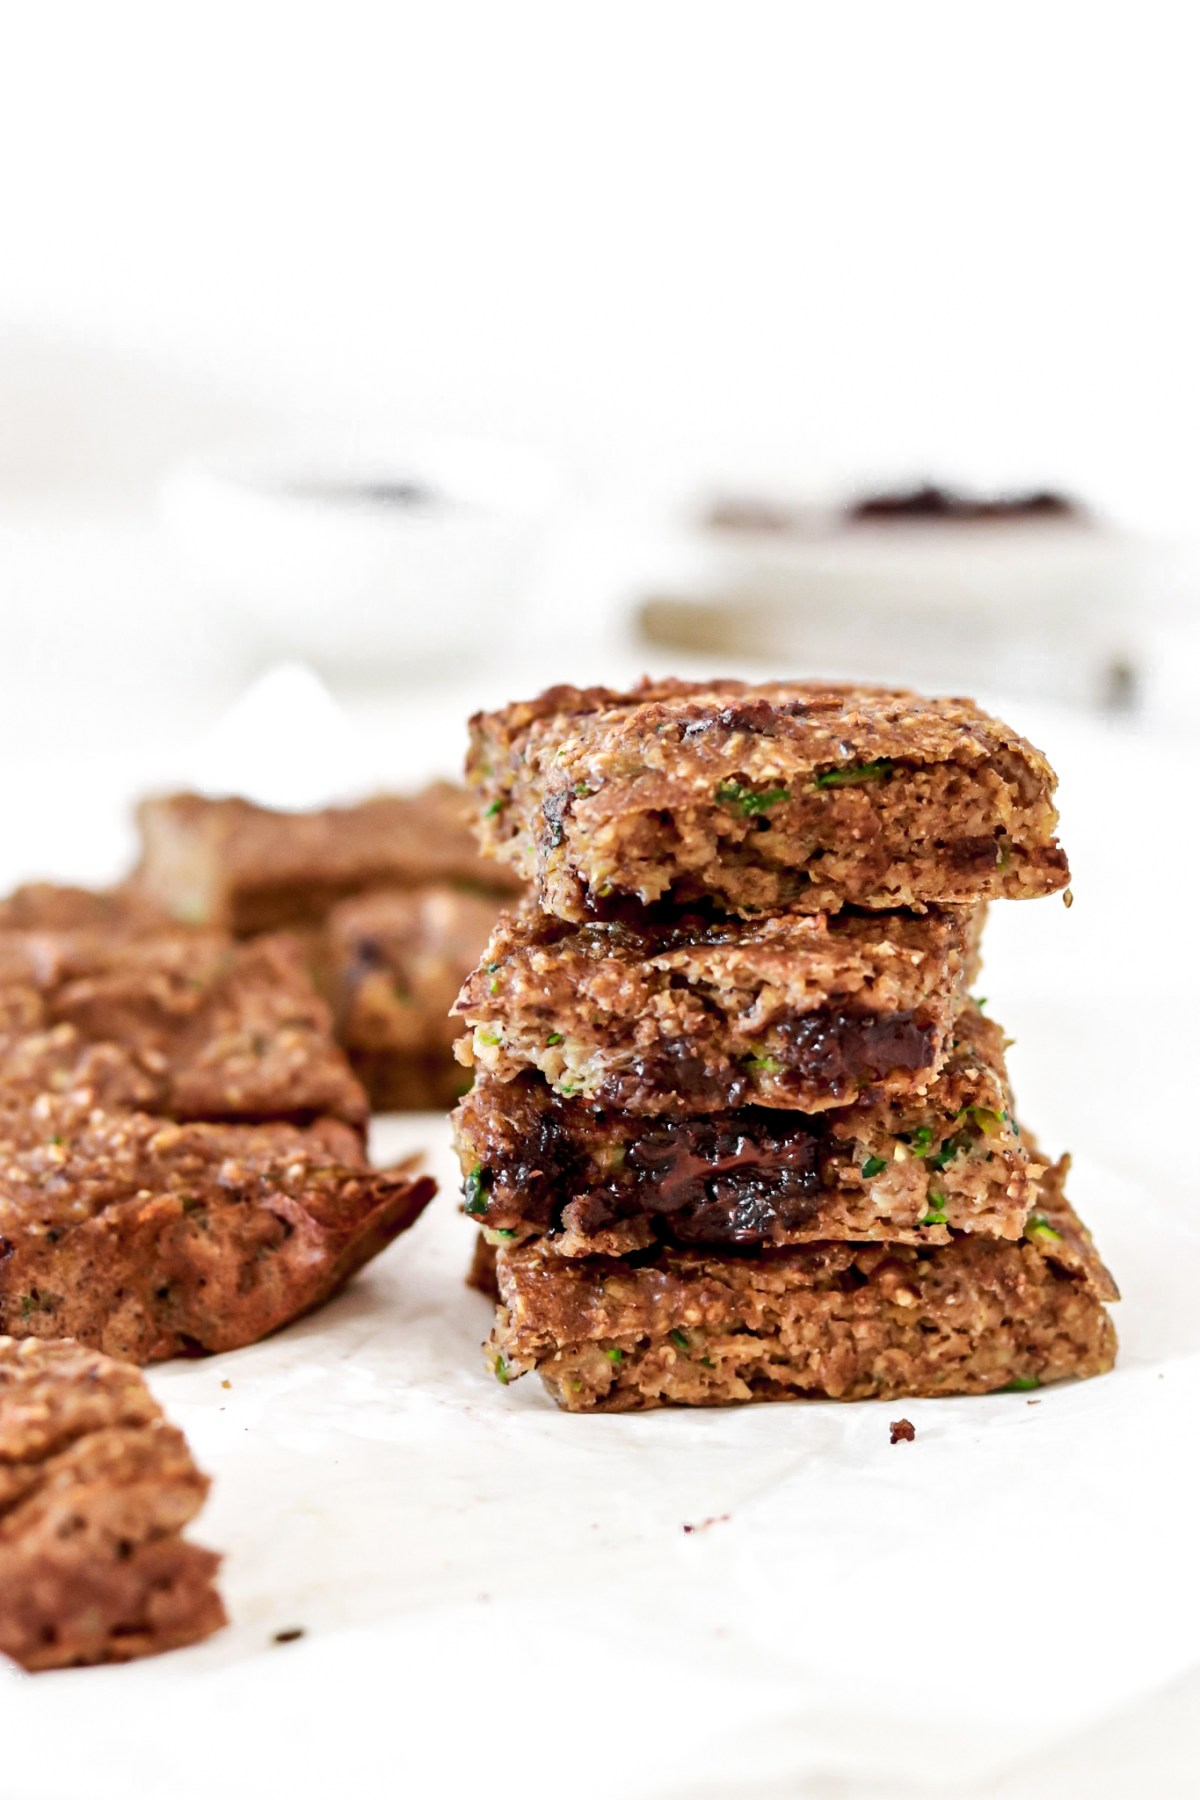 Healthy Zucchini & Banana Bars (Gluten, Dairy, Oil, Sugar Free, Vegan) From Close Up